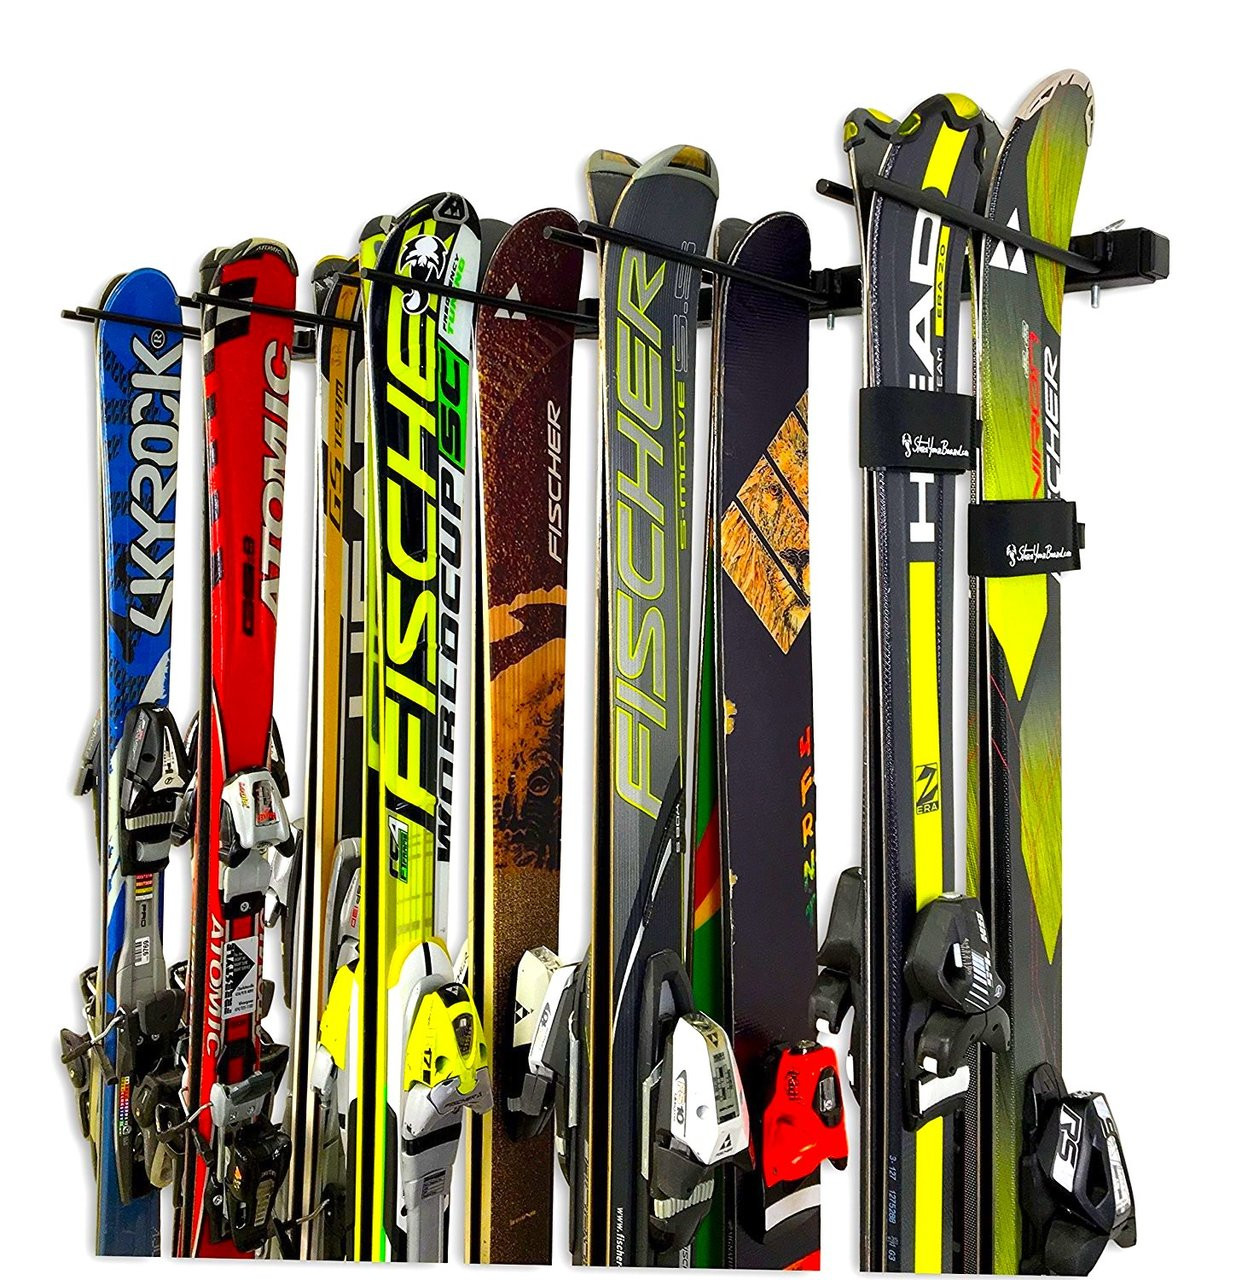 indoor wall storage for 10 pairs of skis